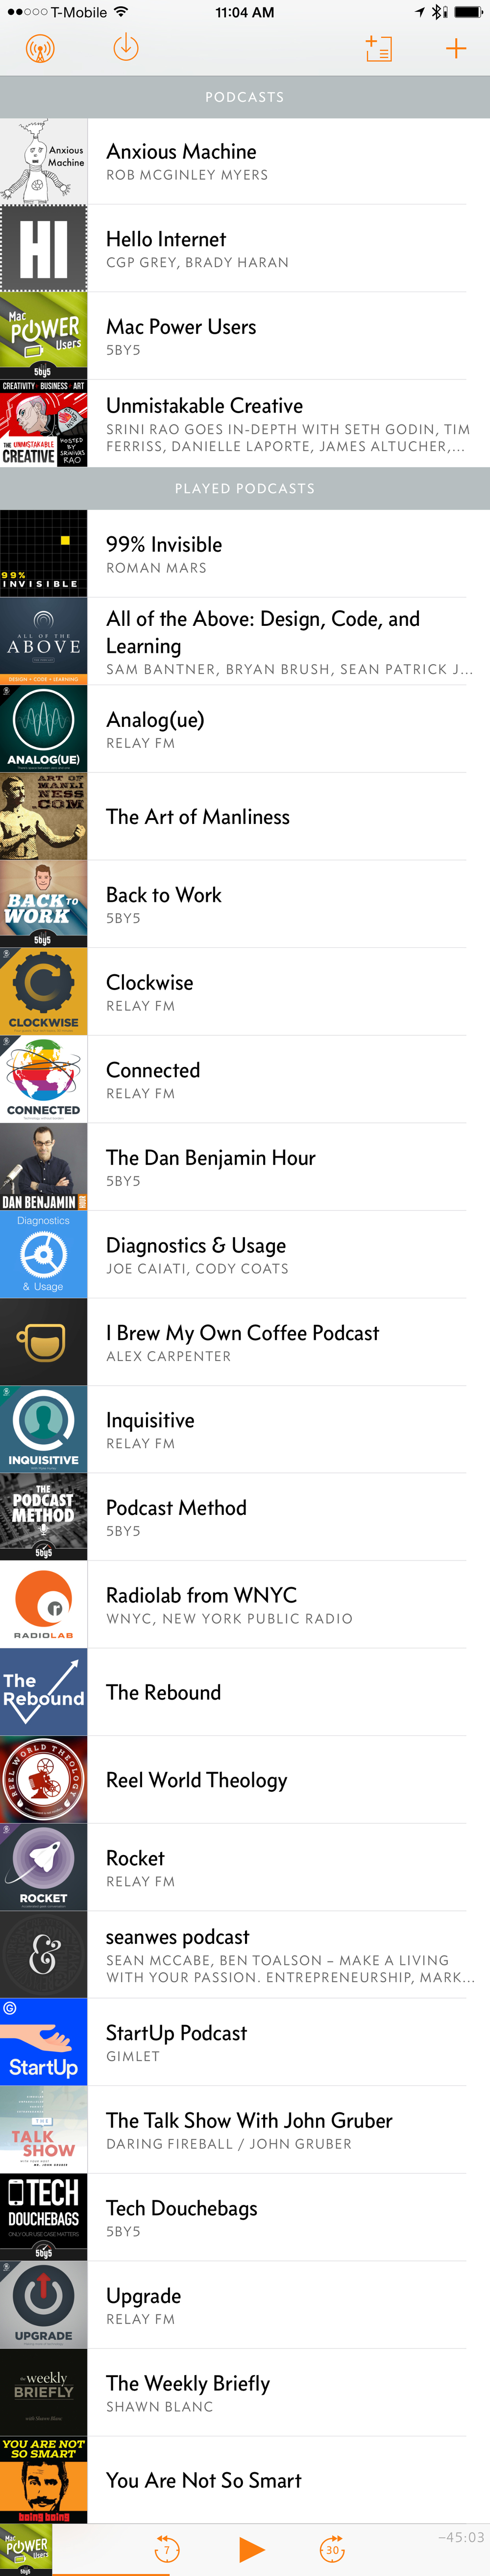 This is a looong screenshot of my subscriptions in the Overcast app.